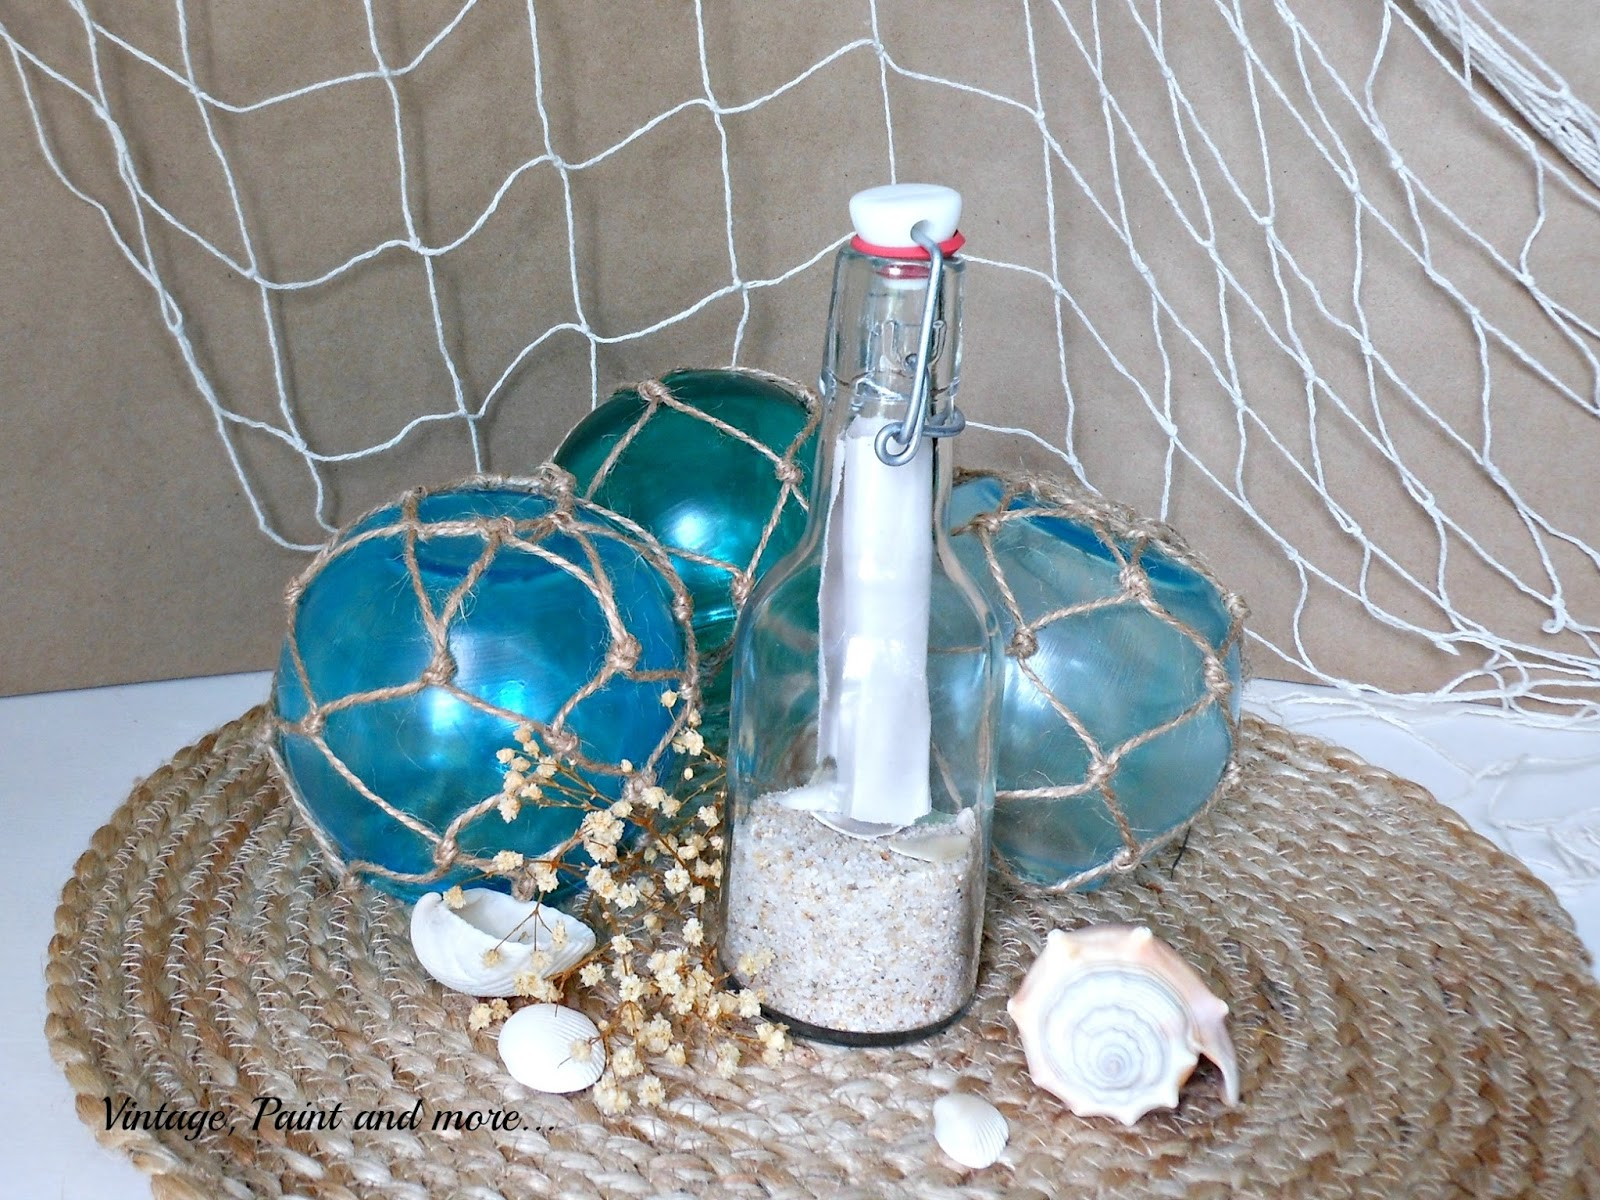 Vintage, Paint and more... crafts with mod podge, dollar tree crafts, faux sea glass craft